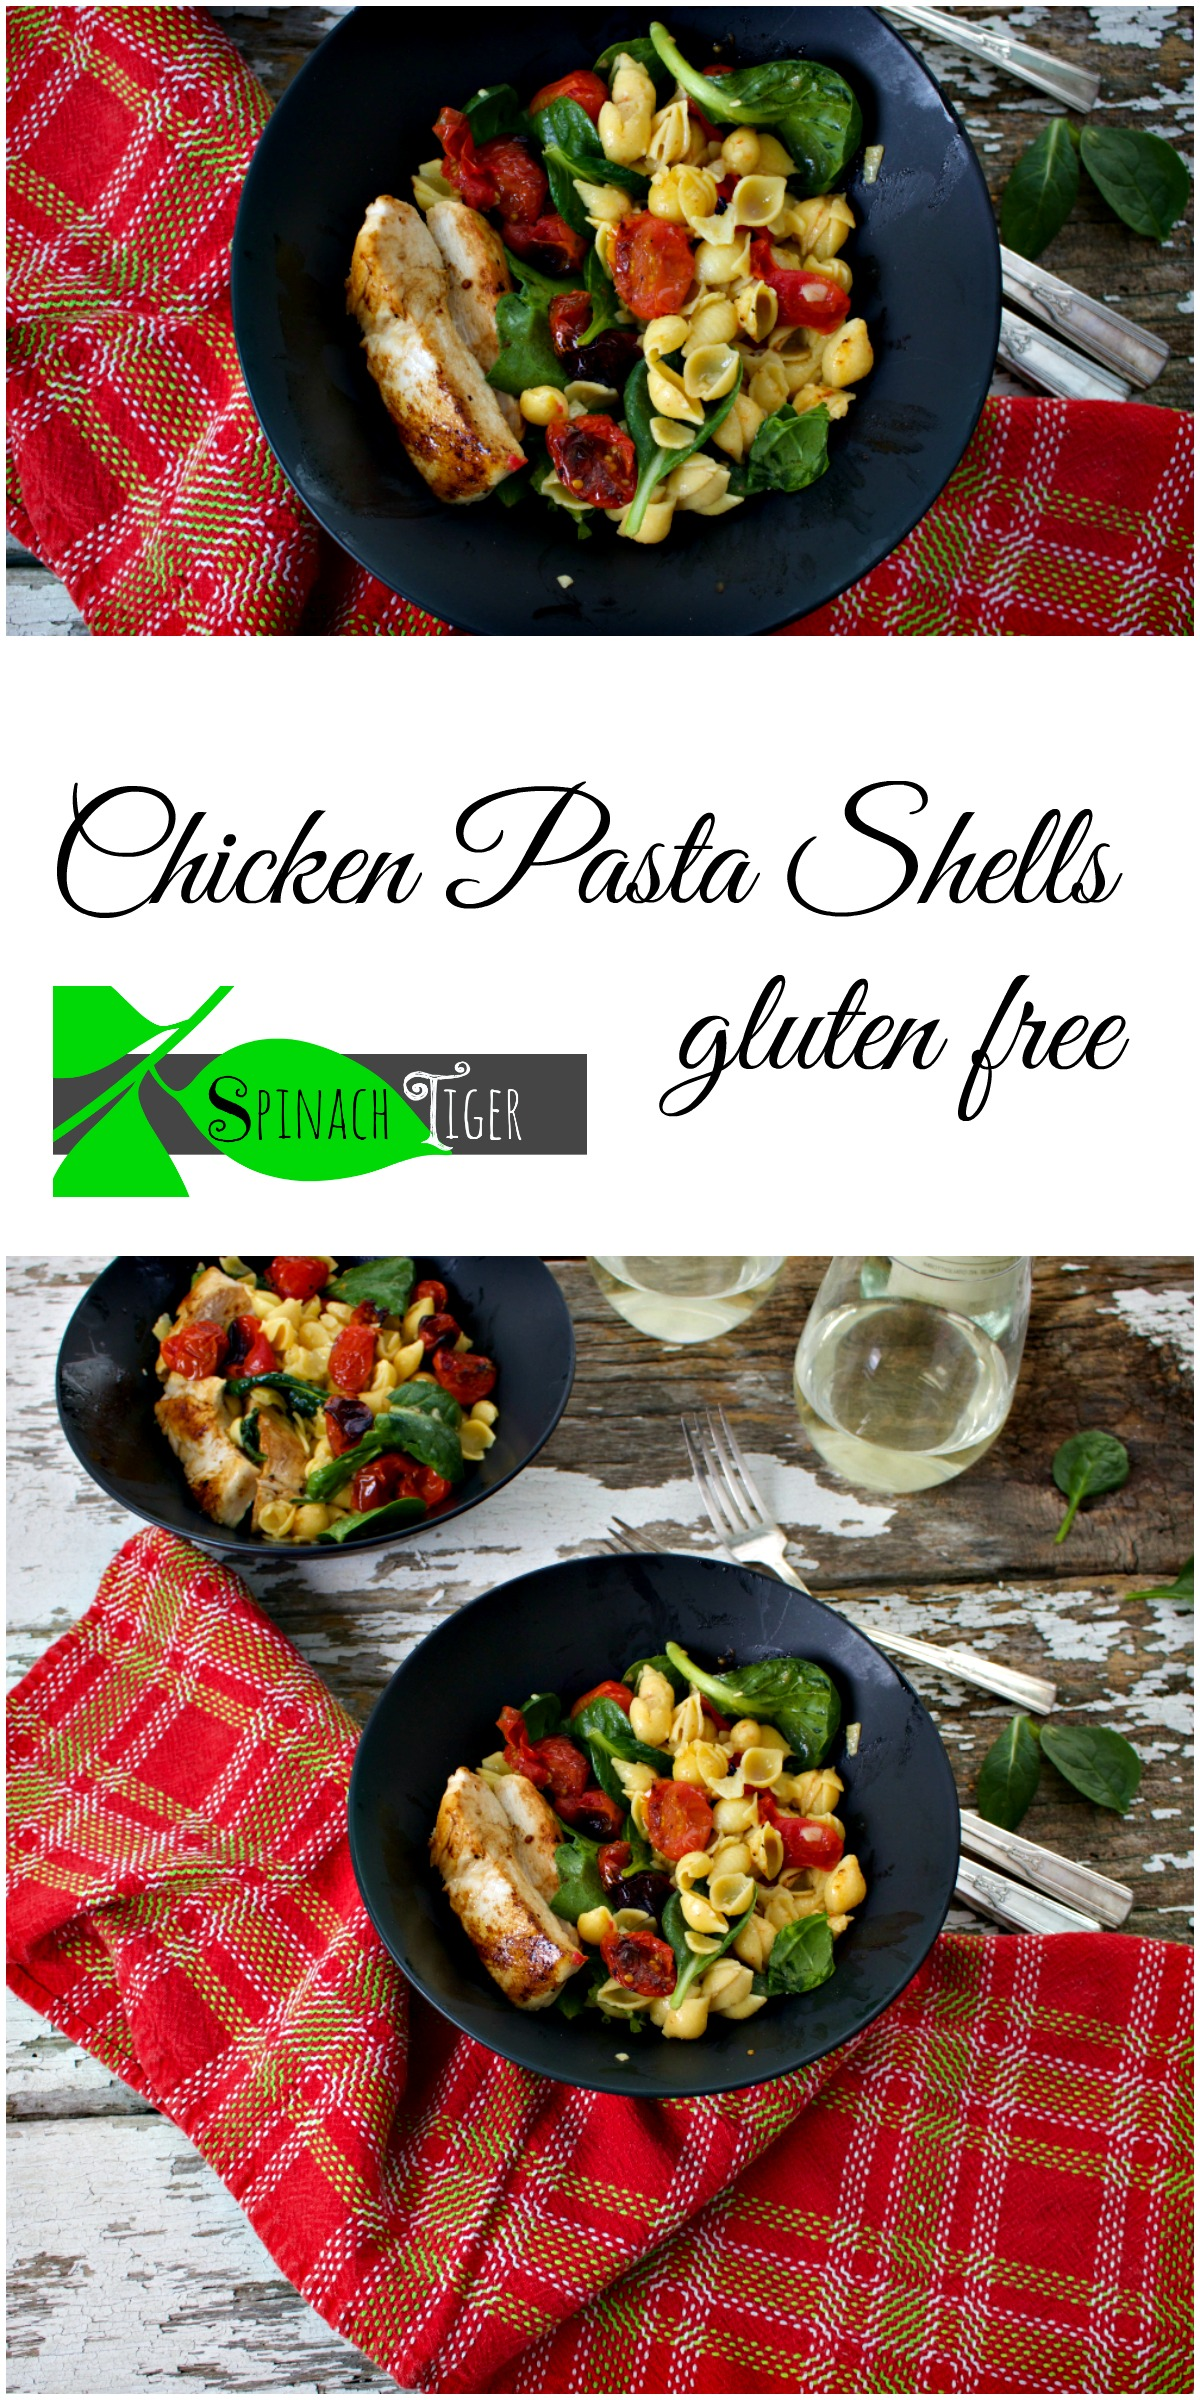 Roasted Tomatoes, Chicken Pasta Shells from Spinach Tiger